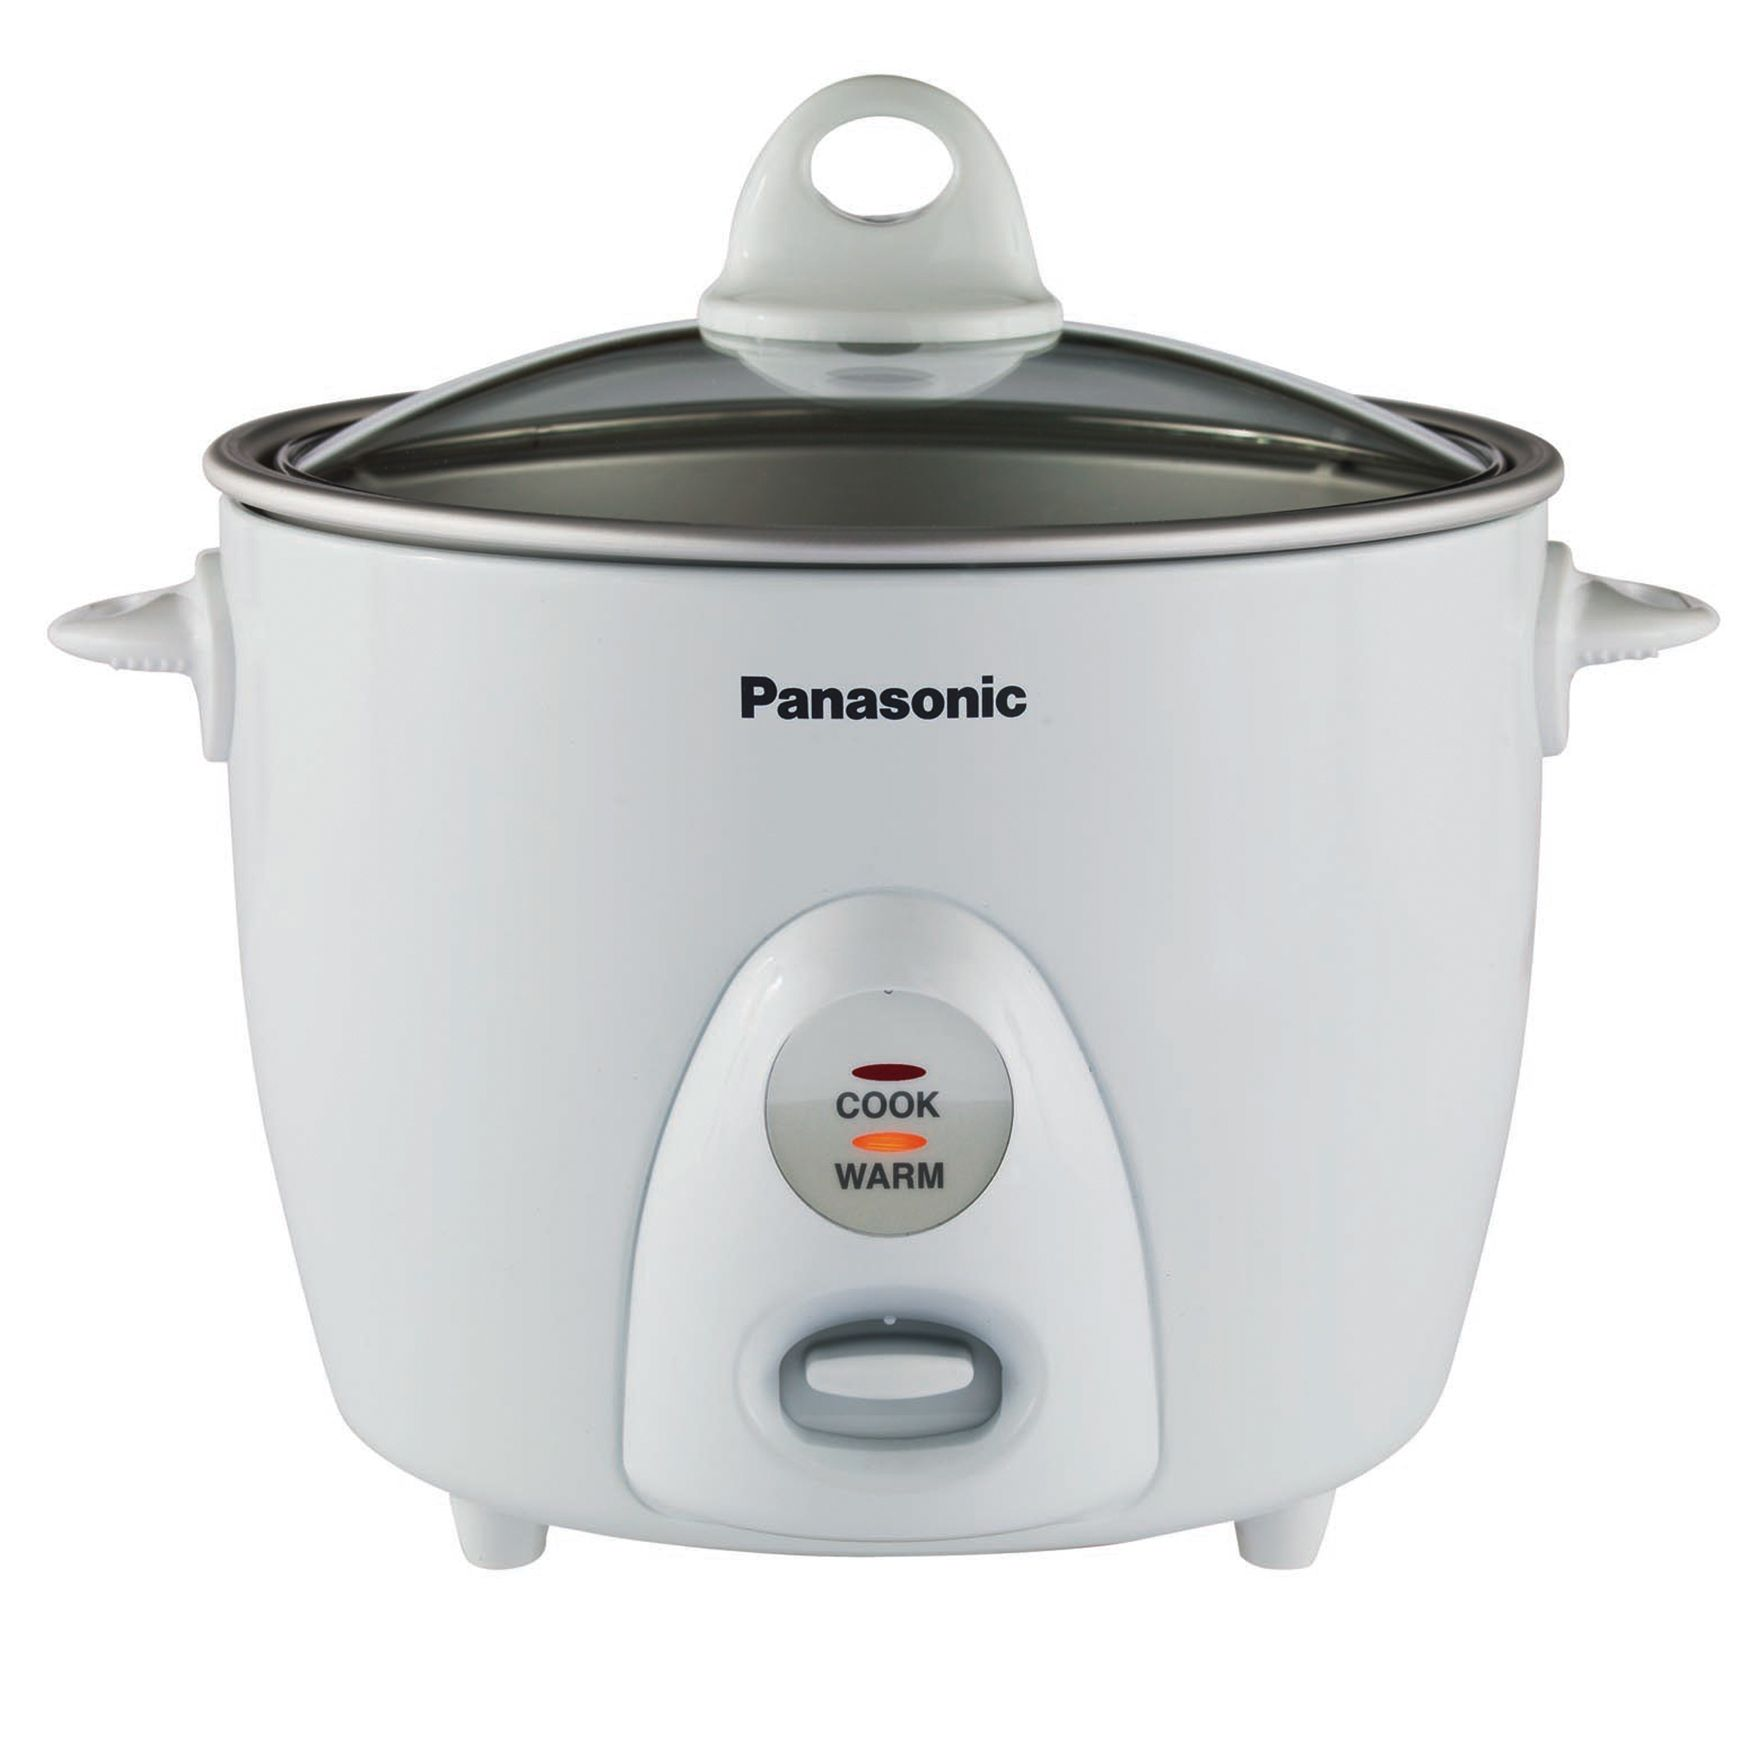 Panasonic® G Series 10 Cup Rice Cooker | Kitchen Appliances ...